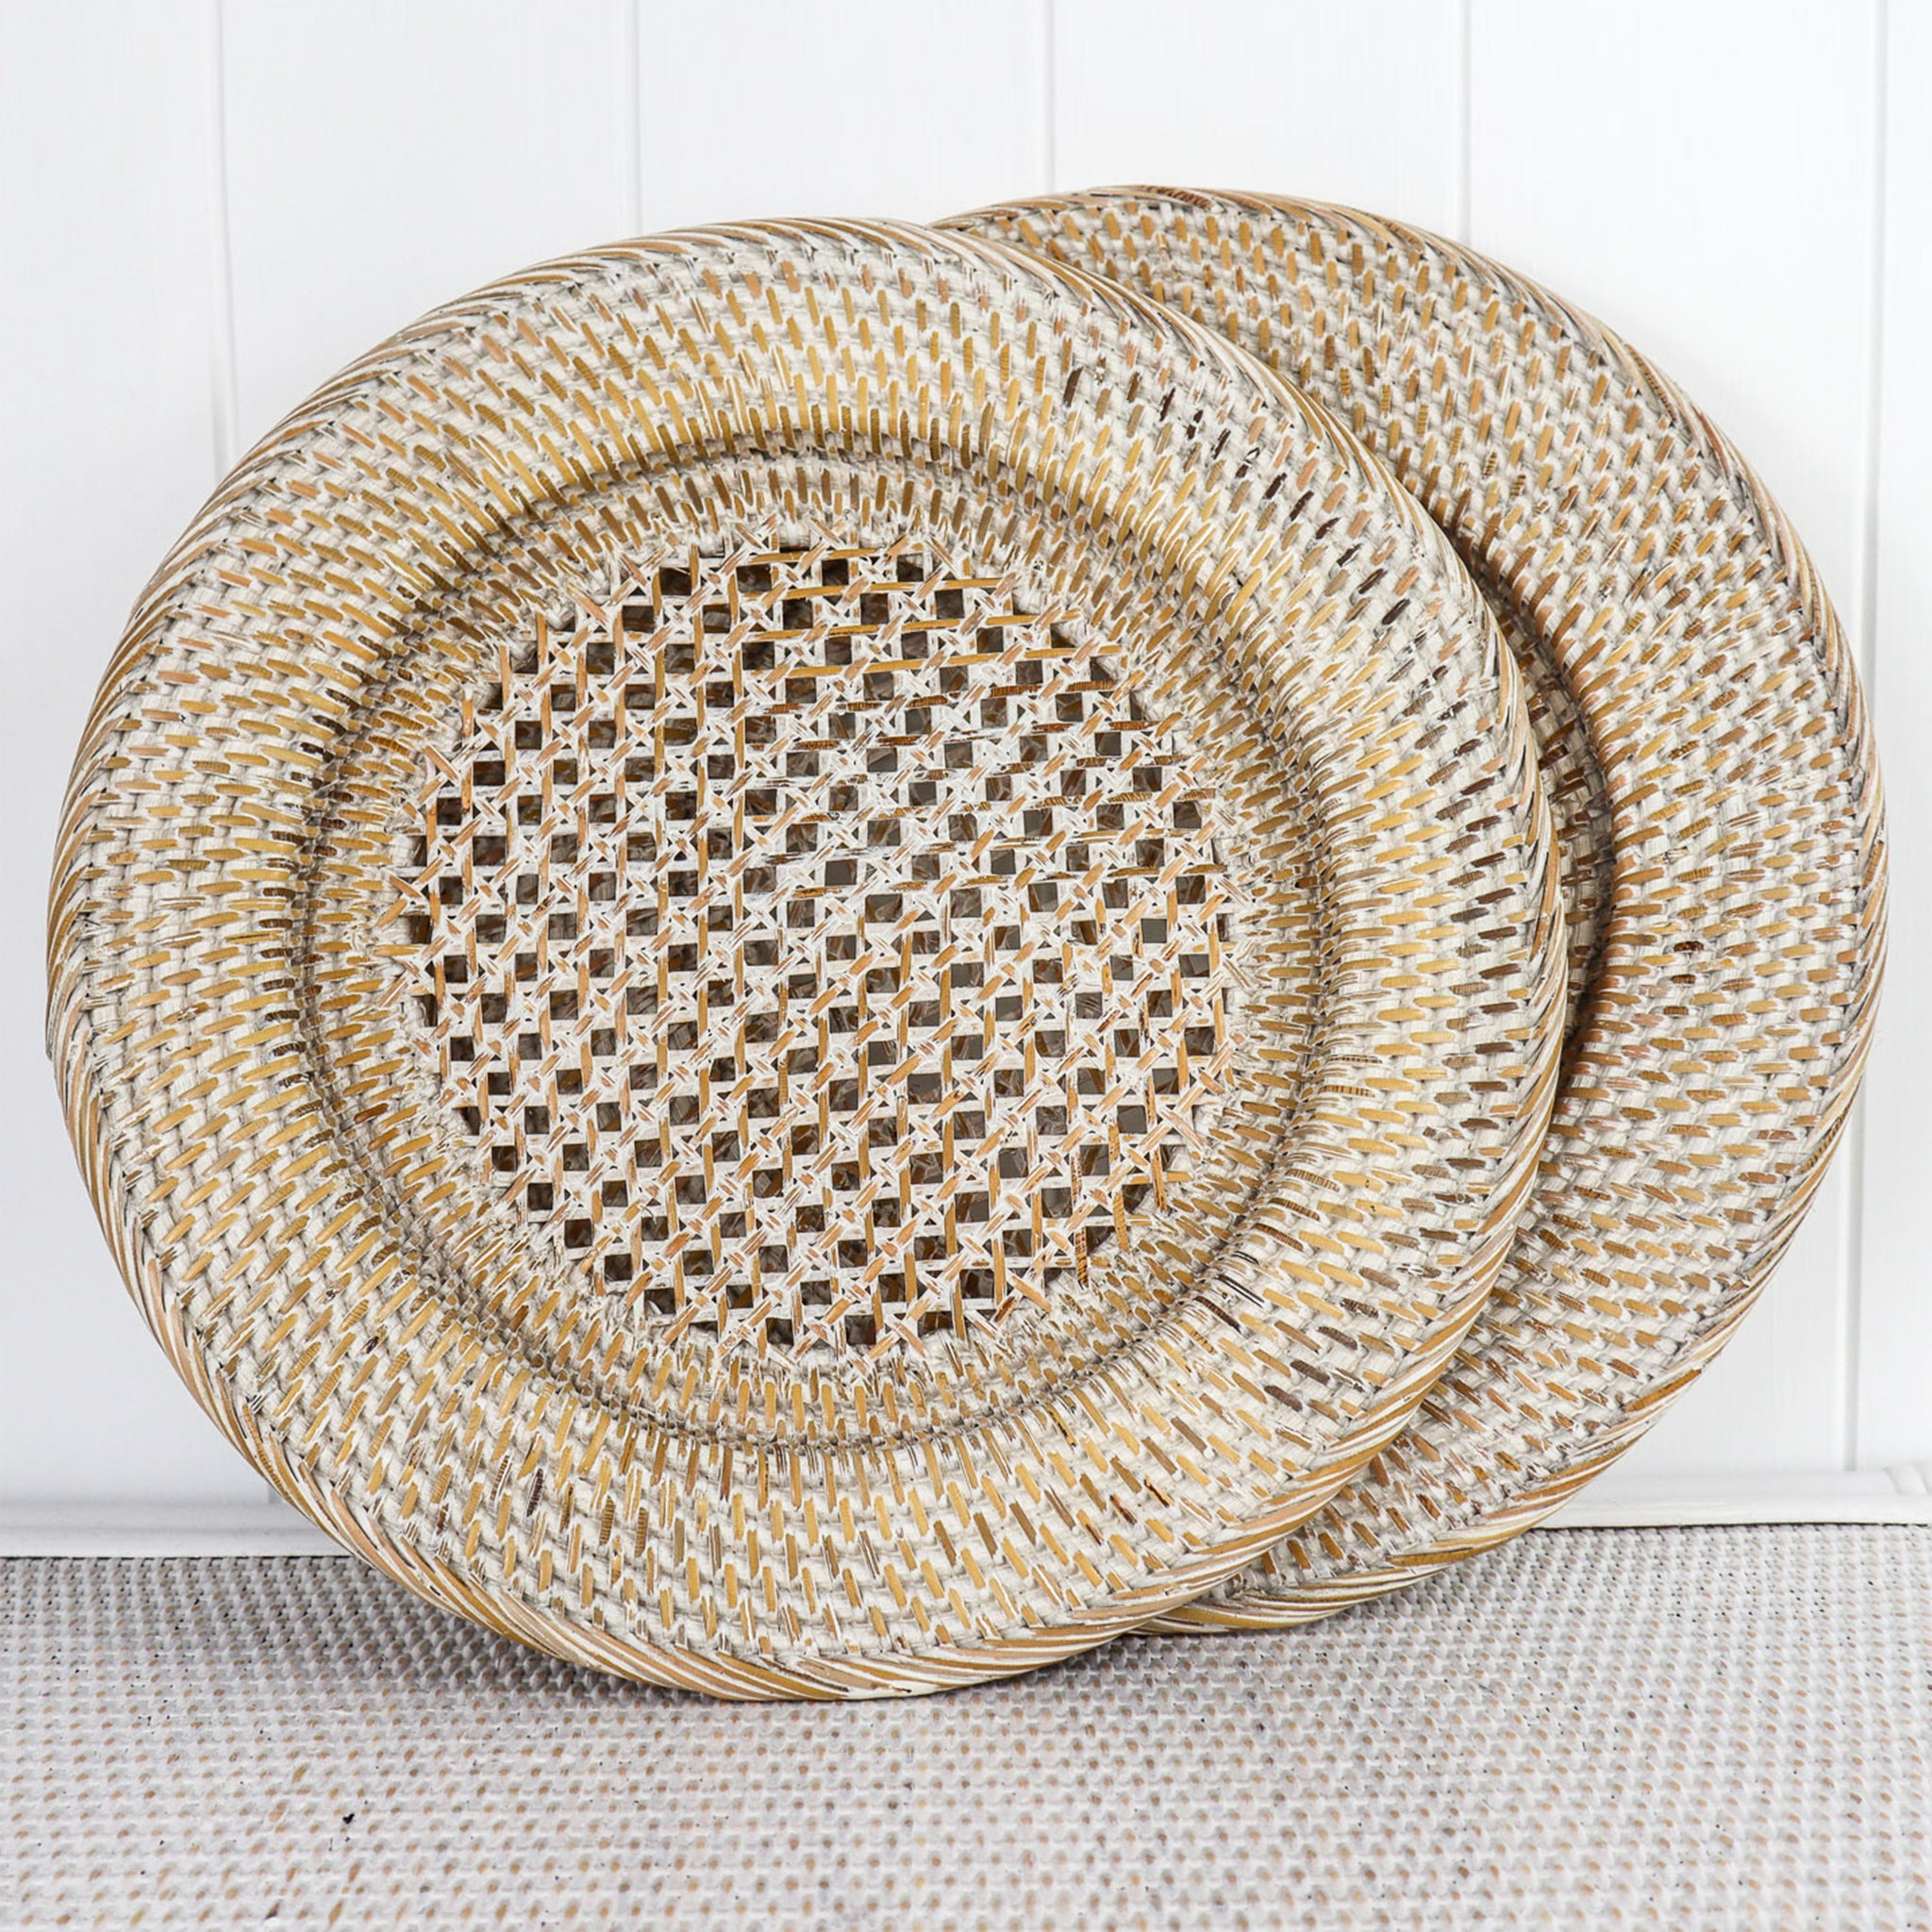 RATTAN WHITEWASHED TABLE CHARGERS